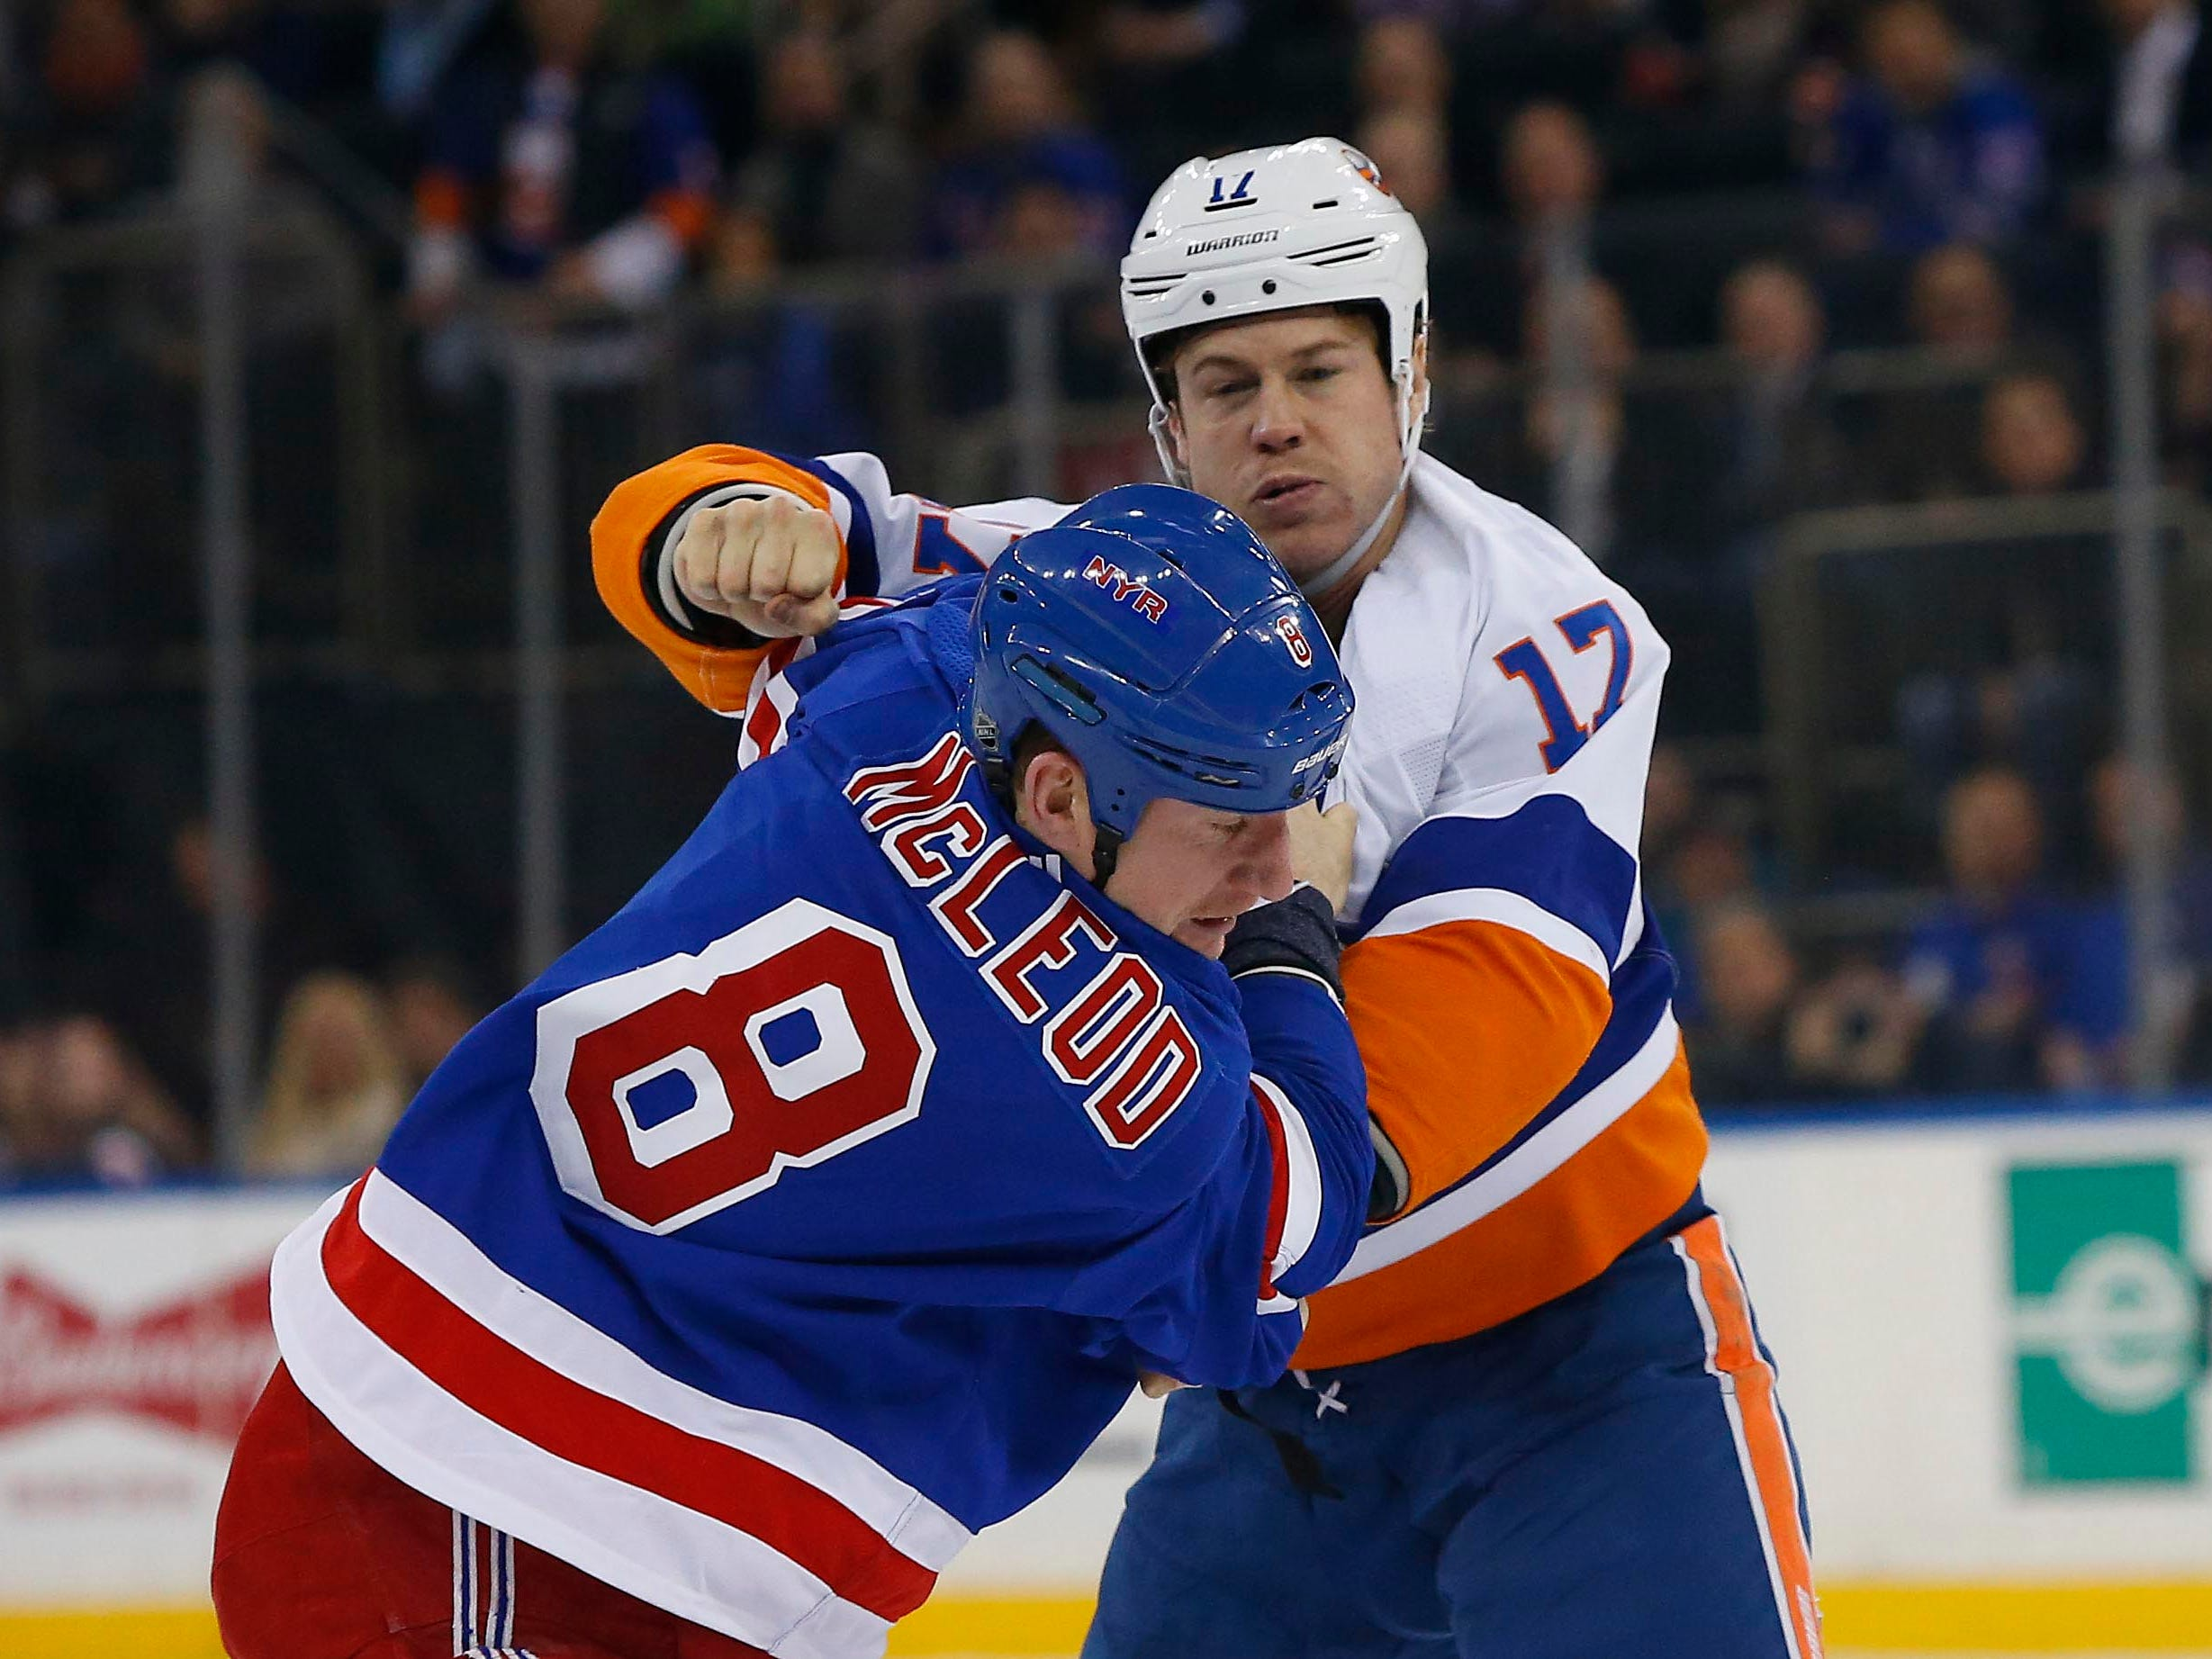 Jan. 10: New York Islanders' Matt Martin vs. New York Rangers' Cody McLeod